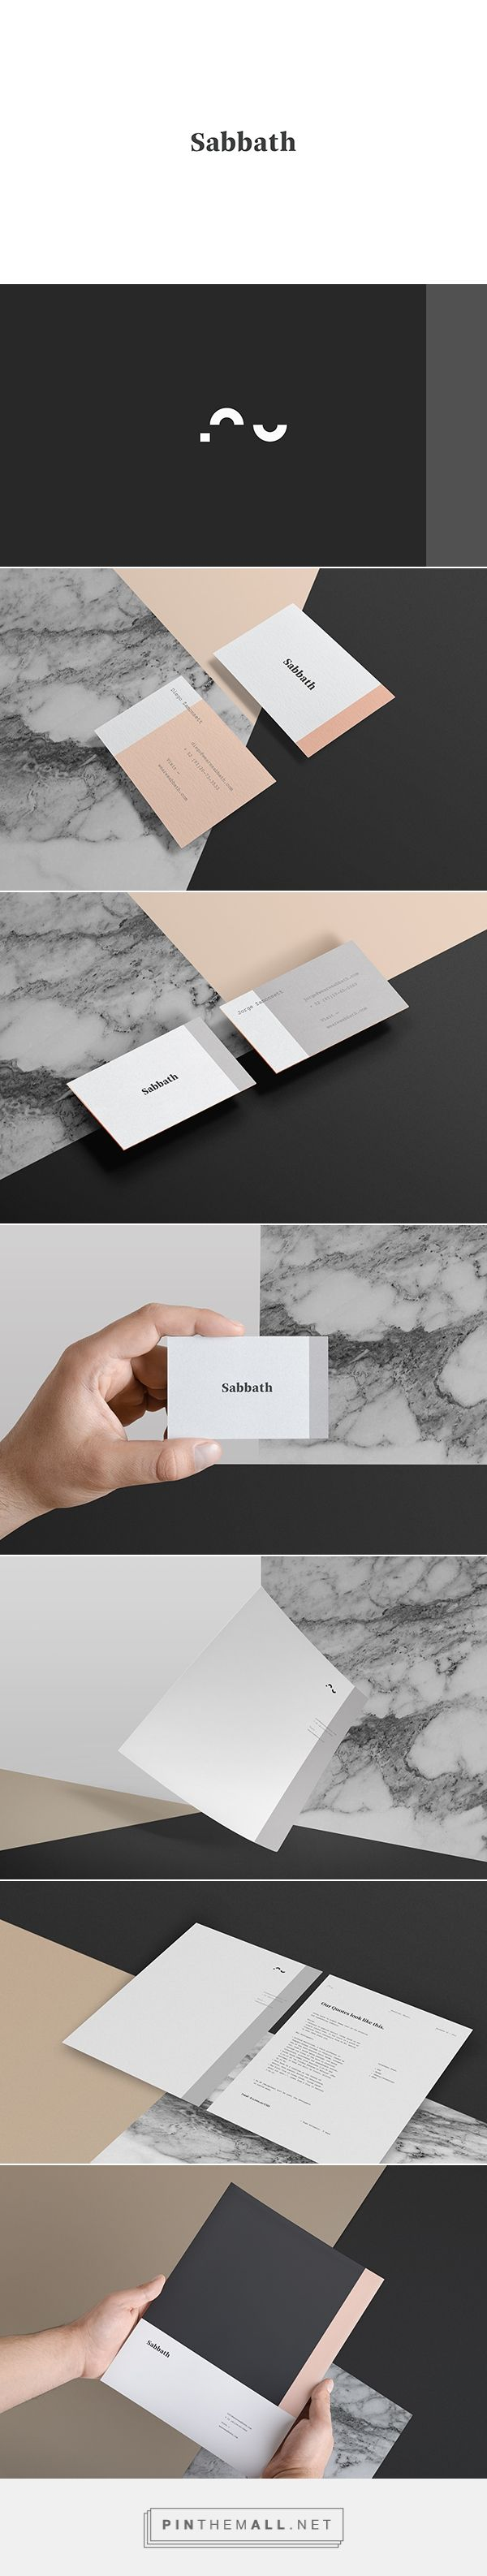 Sabbath Visuals on Behance